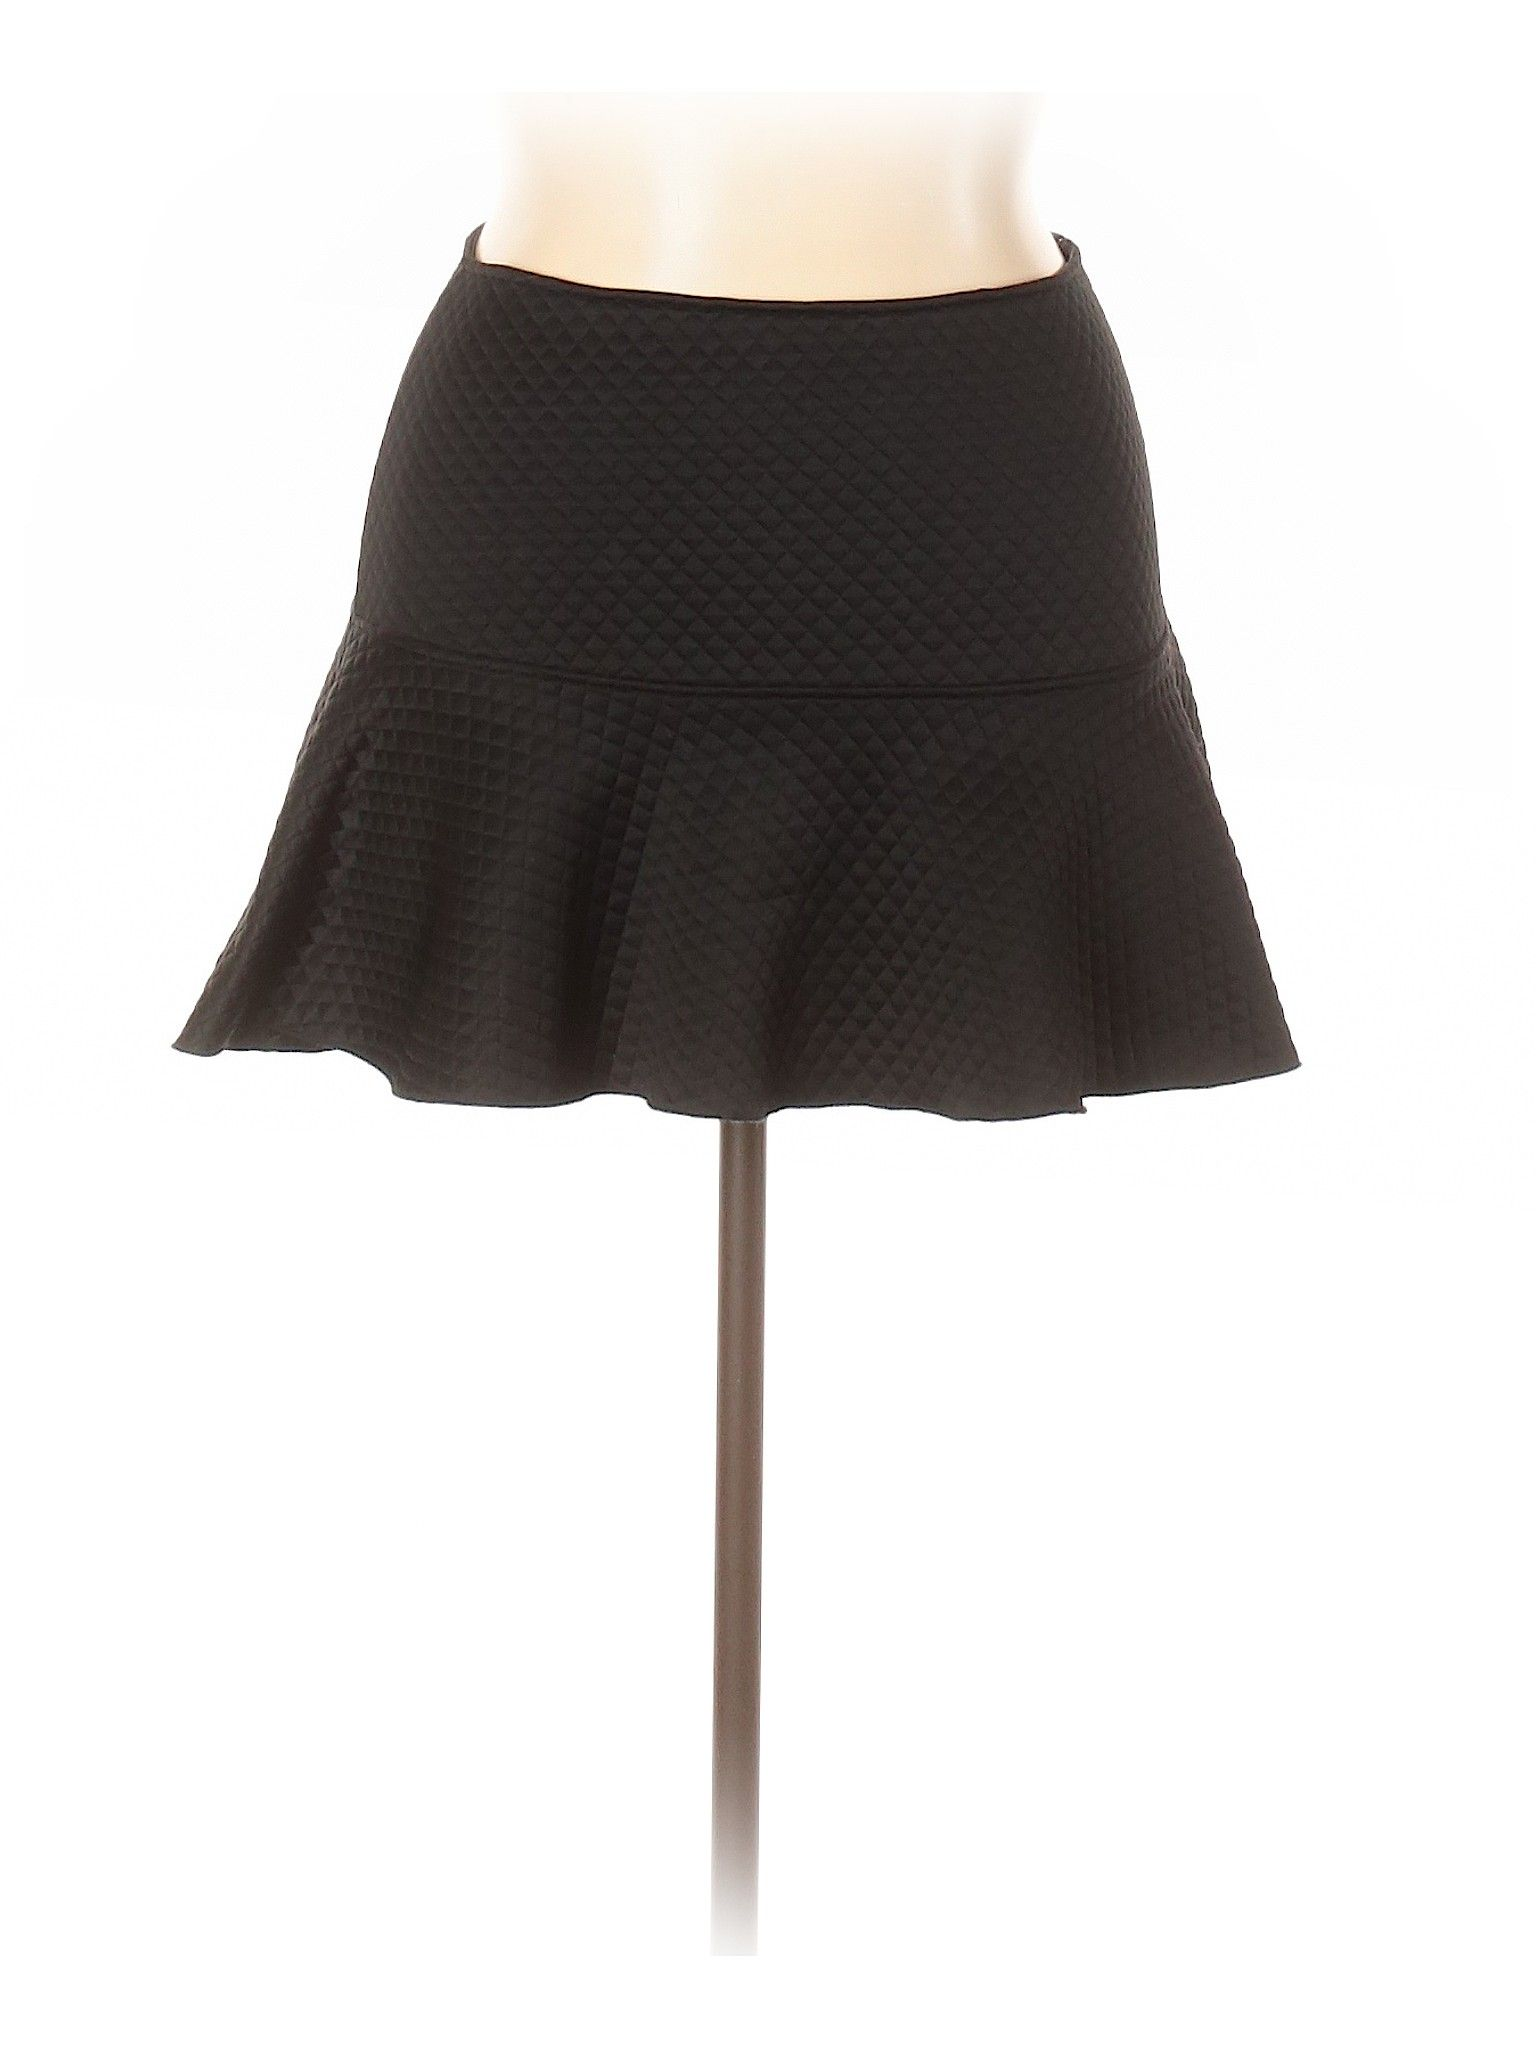 Zara W B Collection Casual Skirt Black Solid Women S Bottoms Size Large Fit And Flare Skirt Clothes Second Hand Clothes